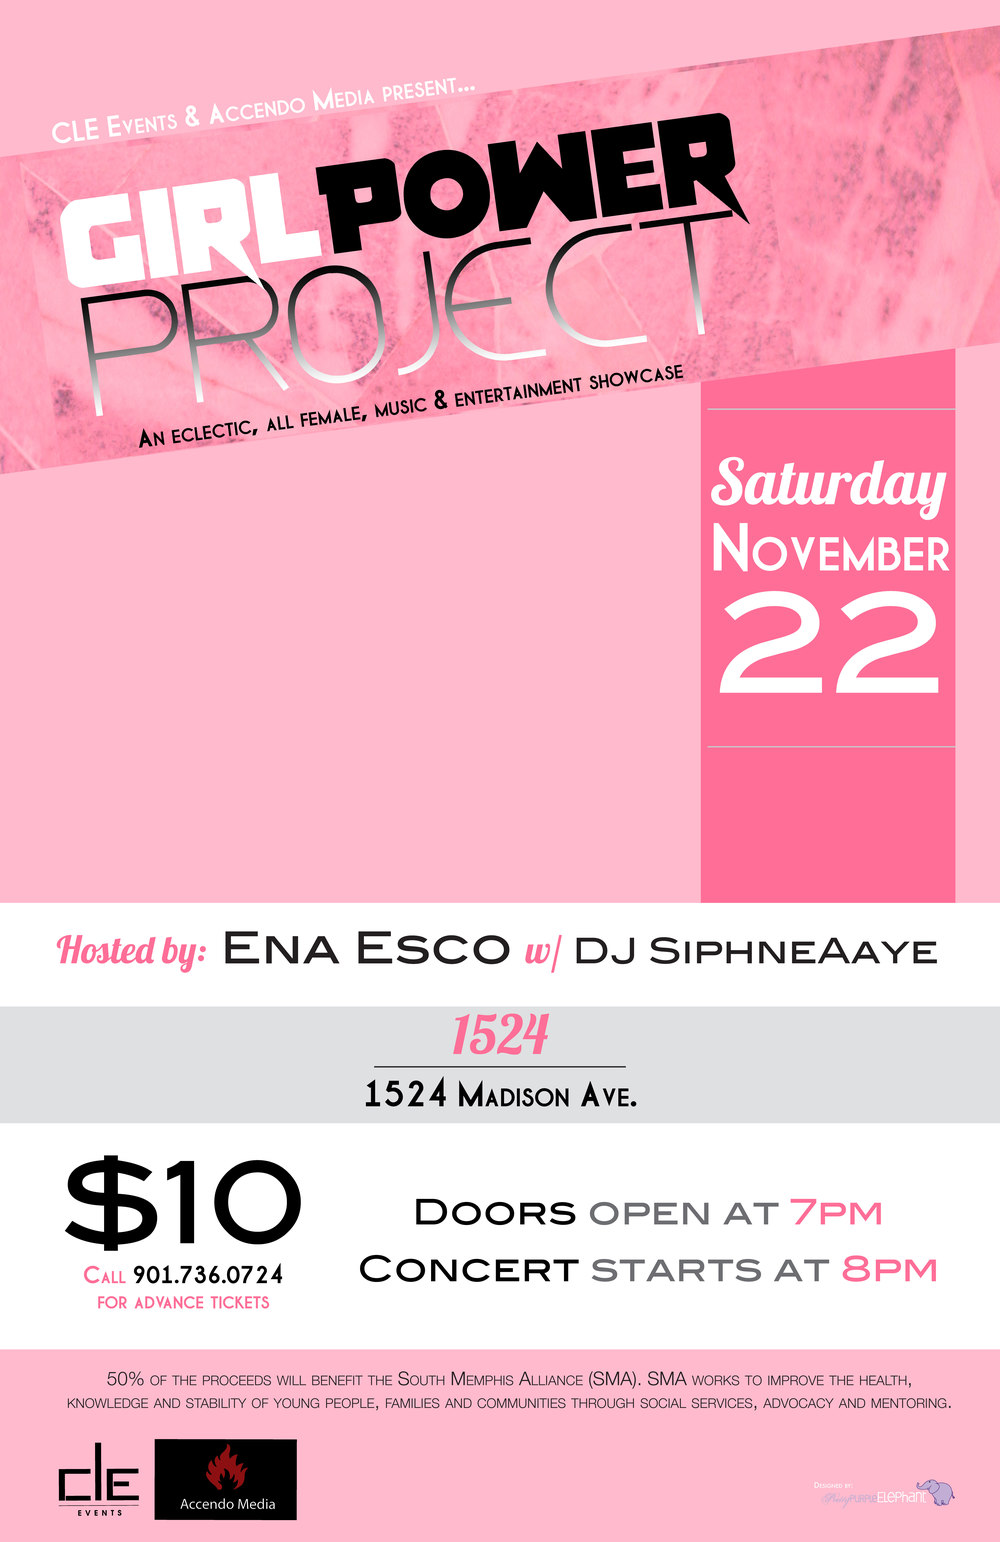 GirlPower Project 2014 Poster.jpg